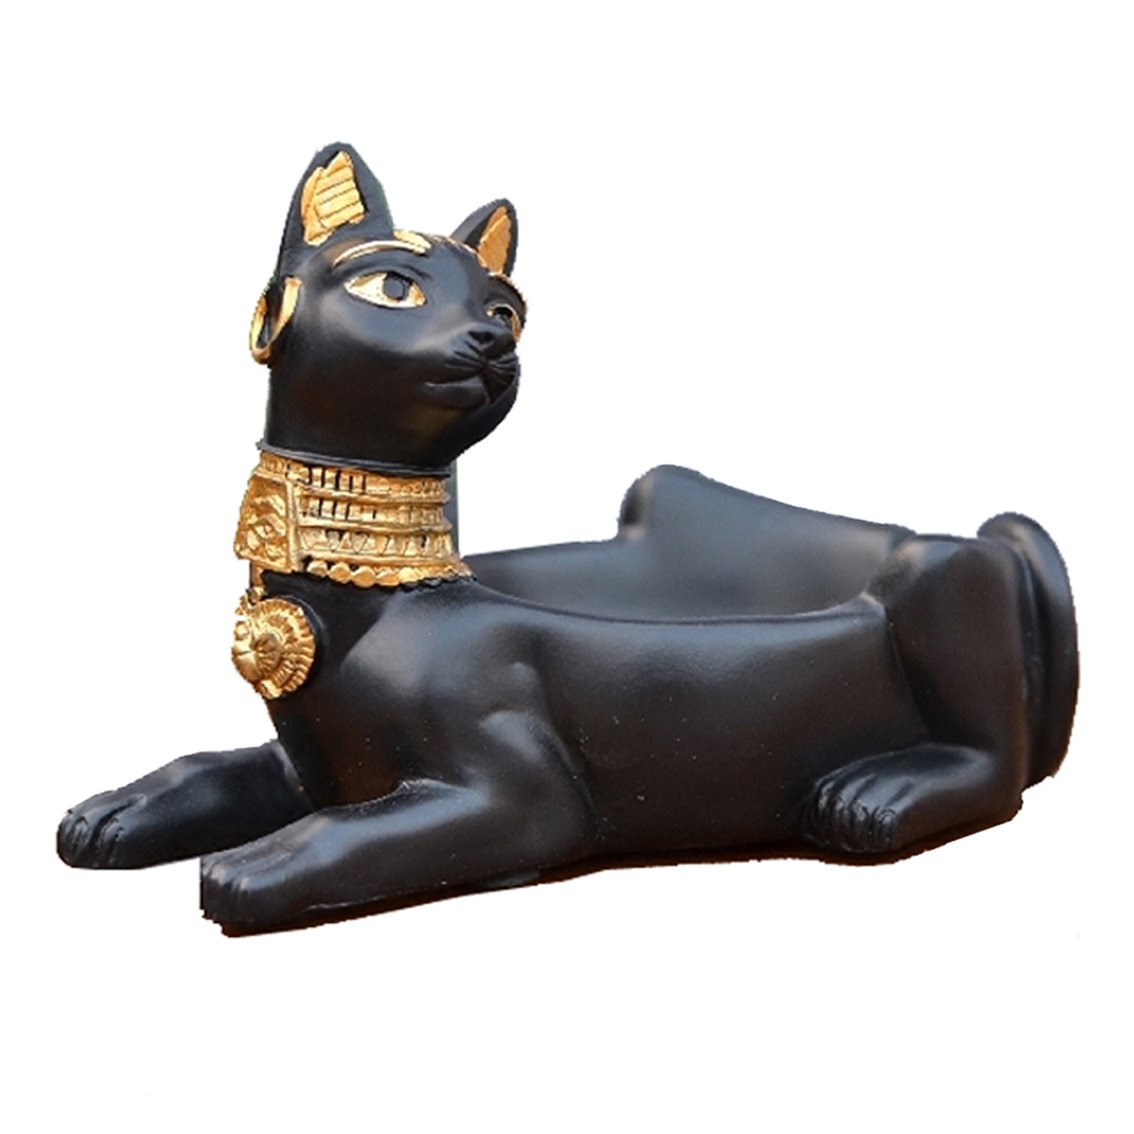 C & S Cigarette Ashtray Ancient Egyptian Bastet Cat Goddess Statue, Ash Holder for Smokers, Tabletop Smoking Ash Tray for Outdoor Indoor Home Office Bar Decoration, Creative Gift (Black)